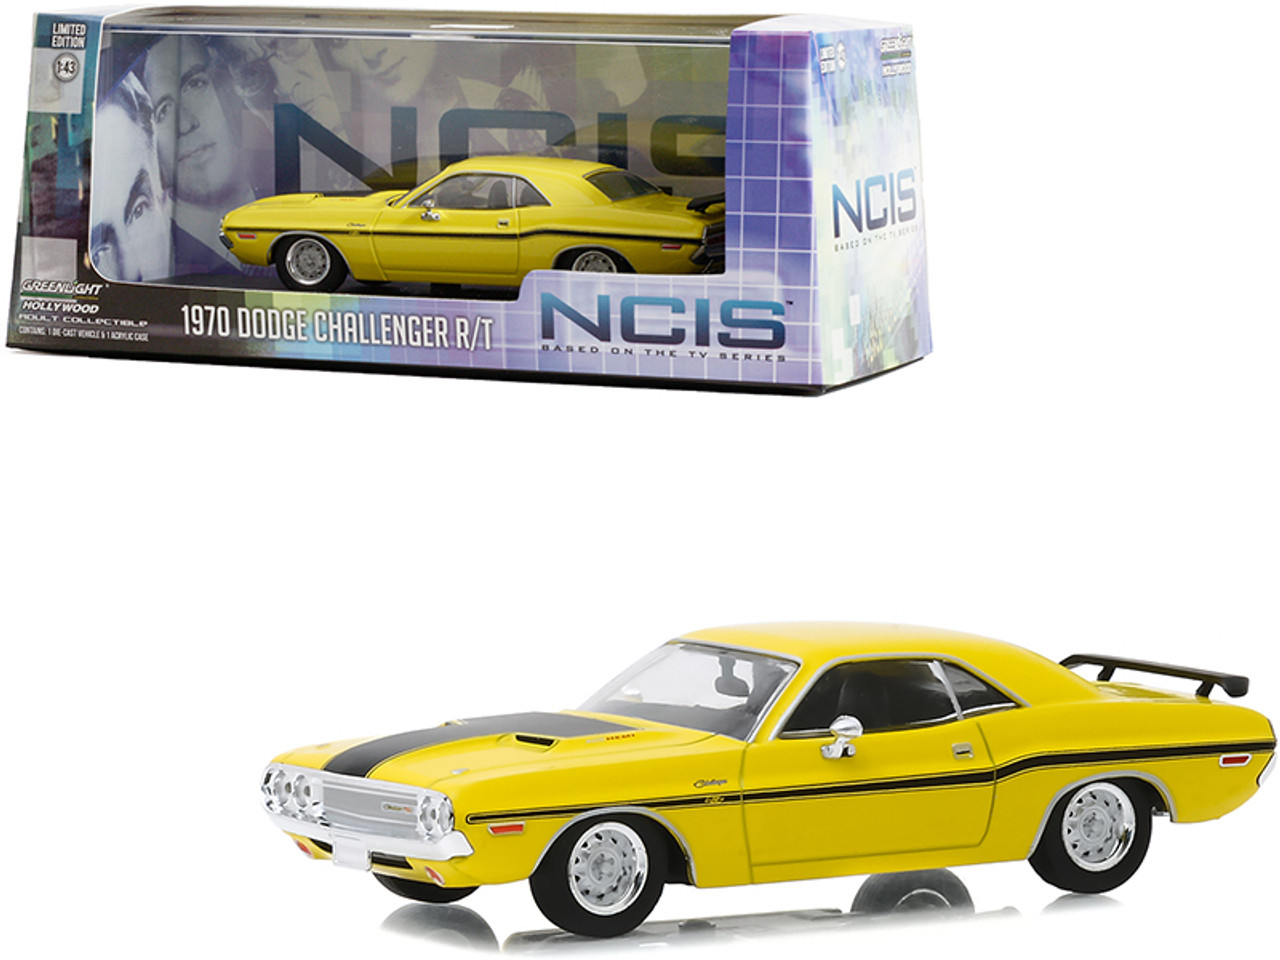 1971 Dodge Challenger 340 Convertible Gold with White Interior The Mod Squad 1968-1973 TV Series 1//18 Diecast Model Car by Greenlight 13566